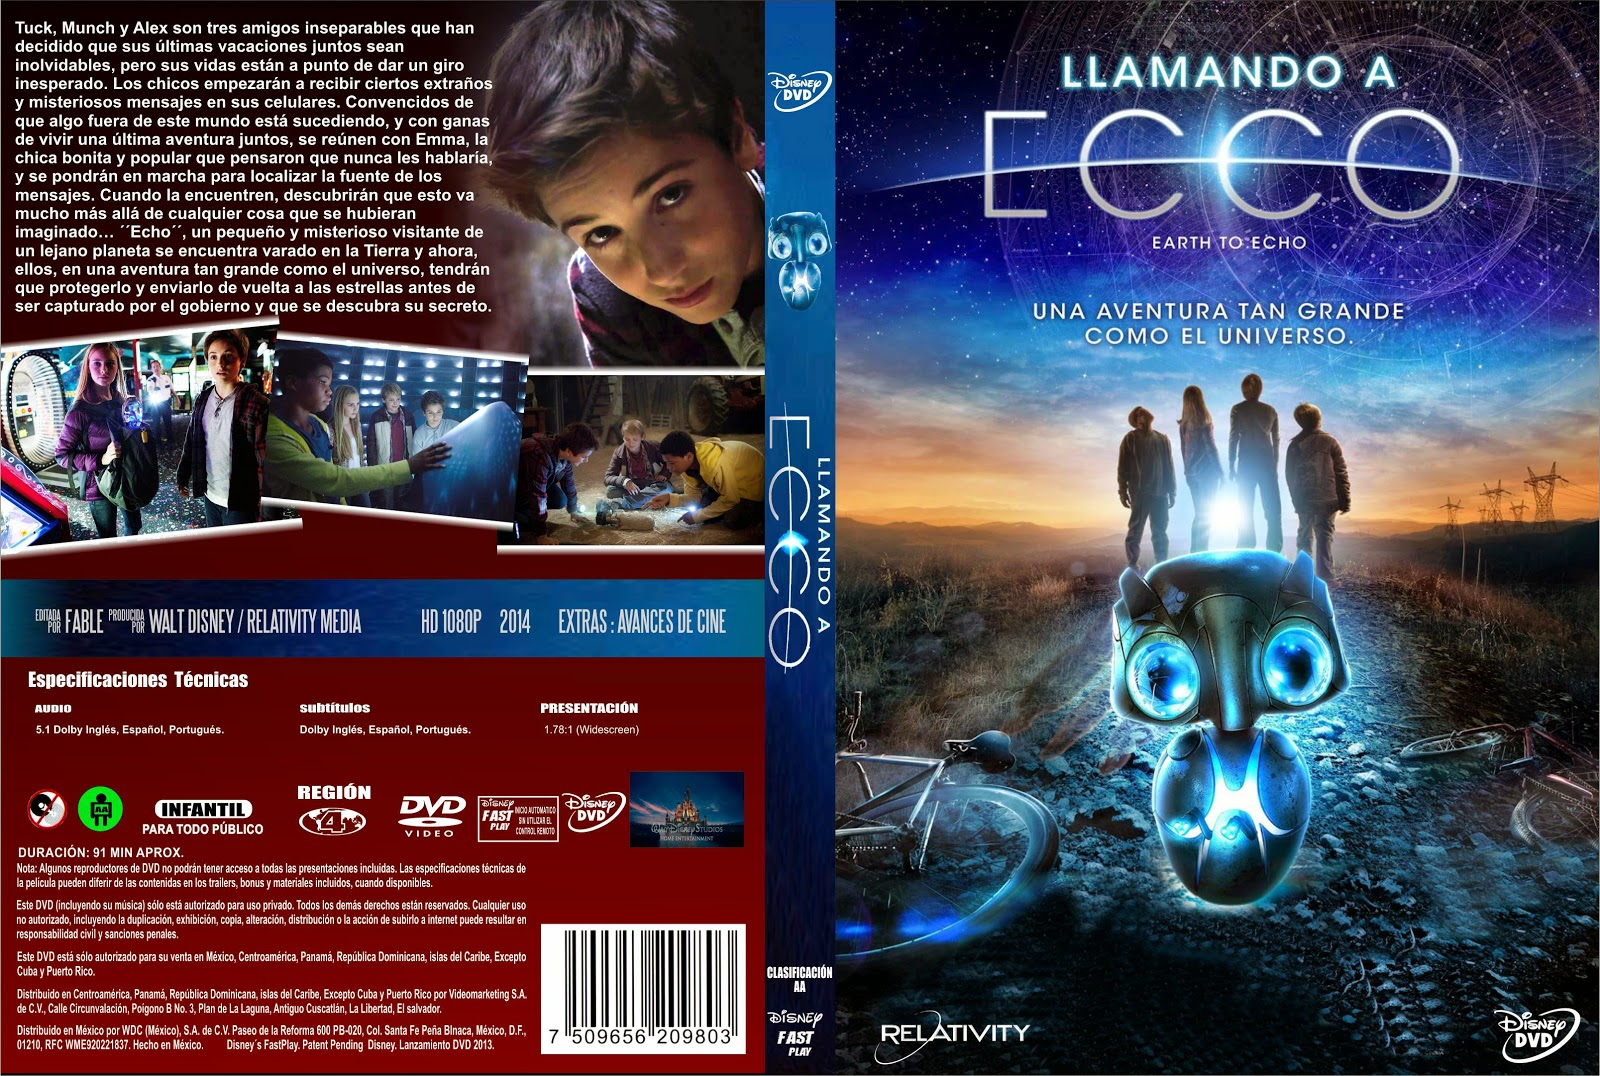 PB | DVD Cover / Caratula FREE: EARTH TO ECHO - DVD COVER ...